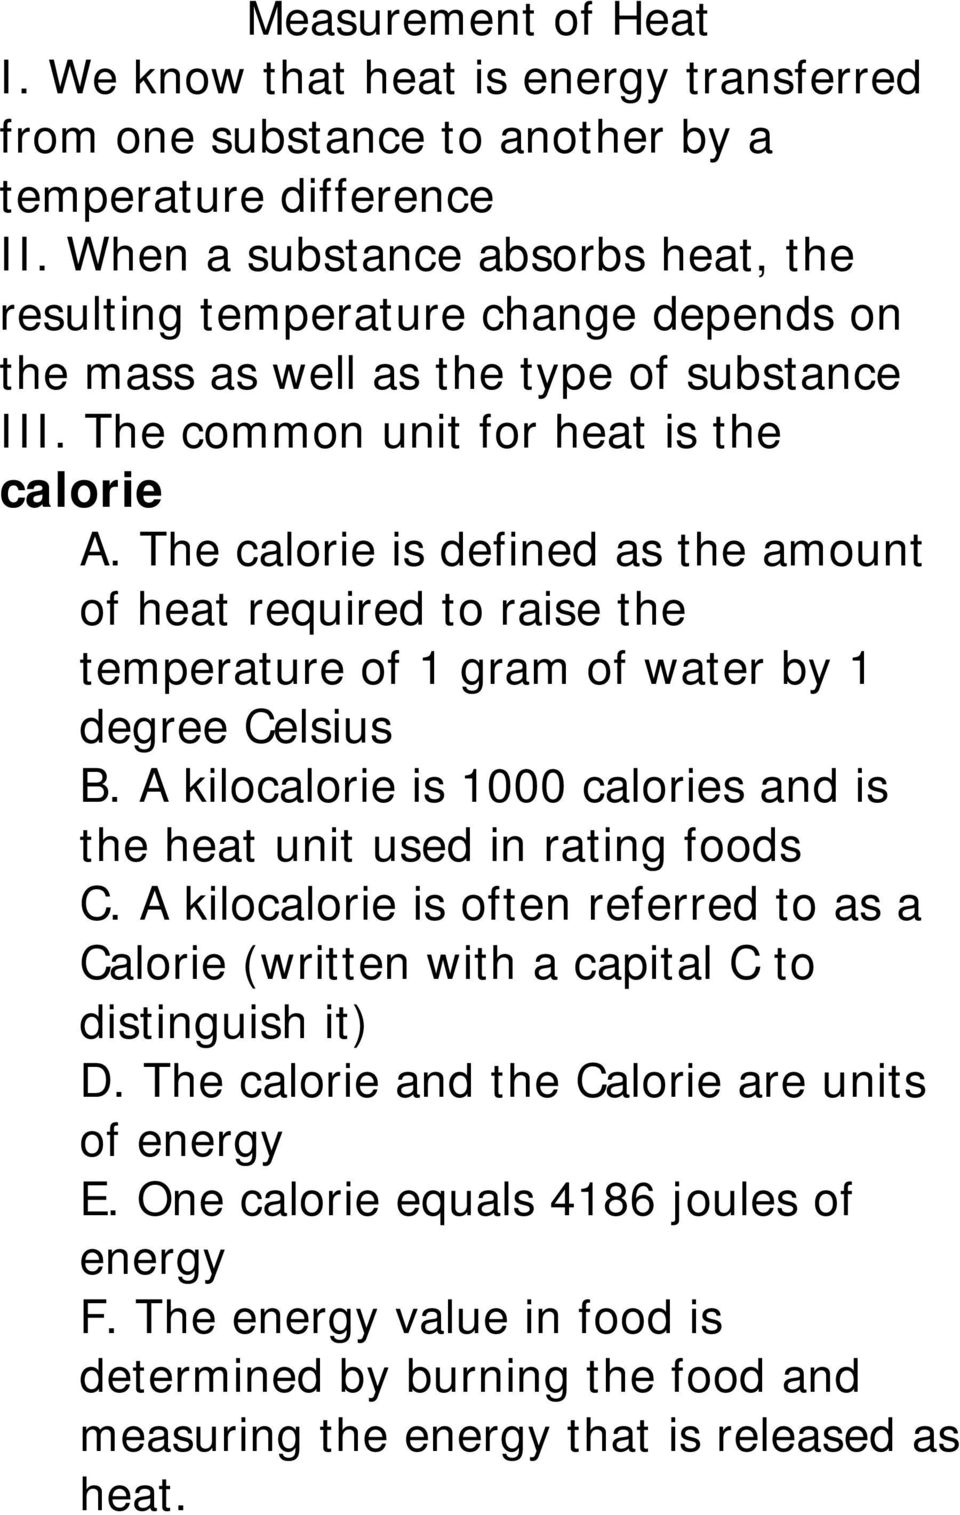 The calorie is defined as the amount of heat required to raise the temperature of 1 gram of water by 1 degree Celsius B. A kilocalorie is 1000 calories and is the heat unit used in rating foods C.